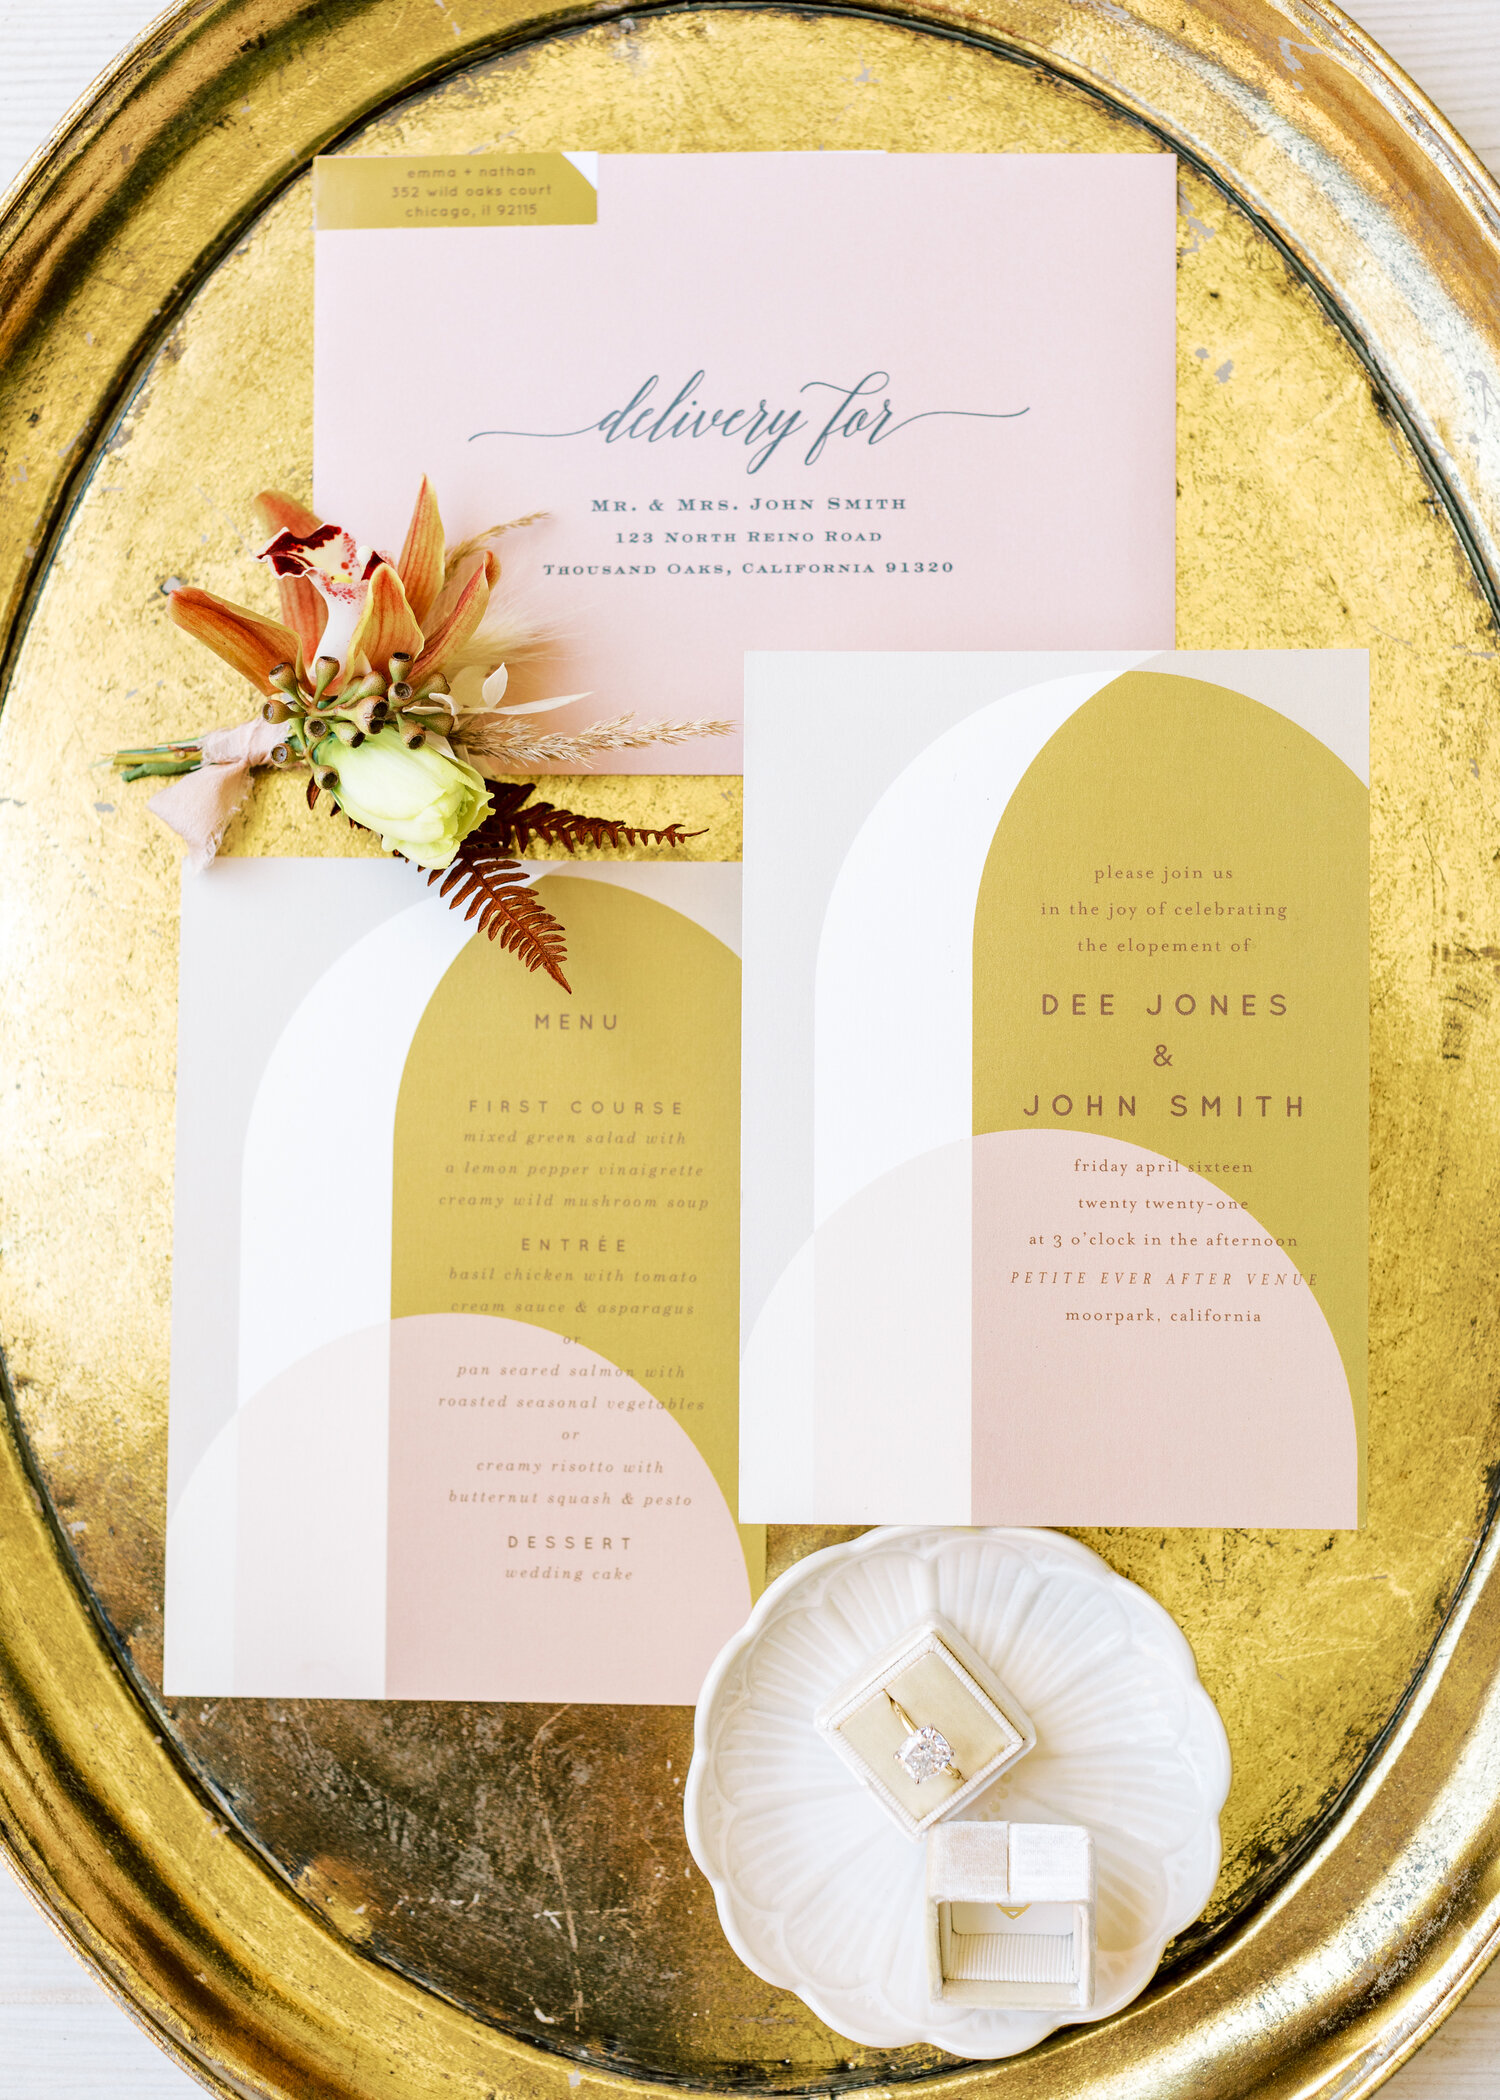 www.santabarbarawedding.com   Events by Fran   Ever After Petite Venue   Kendall Ann Photo   Tangled Lotus   Wedding Invites and Rings